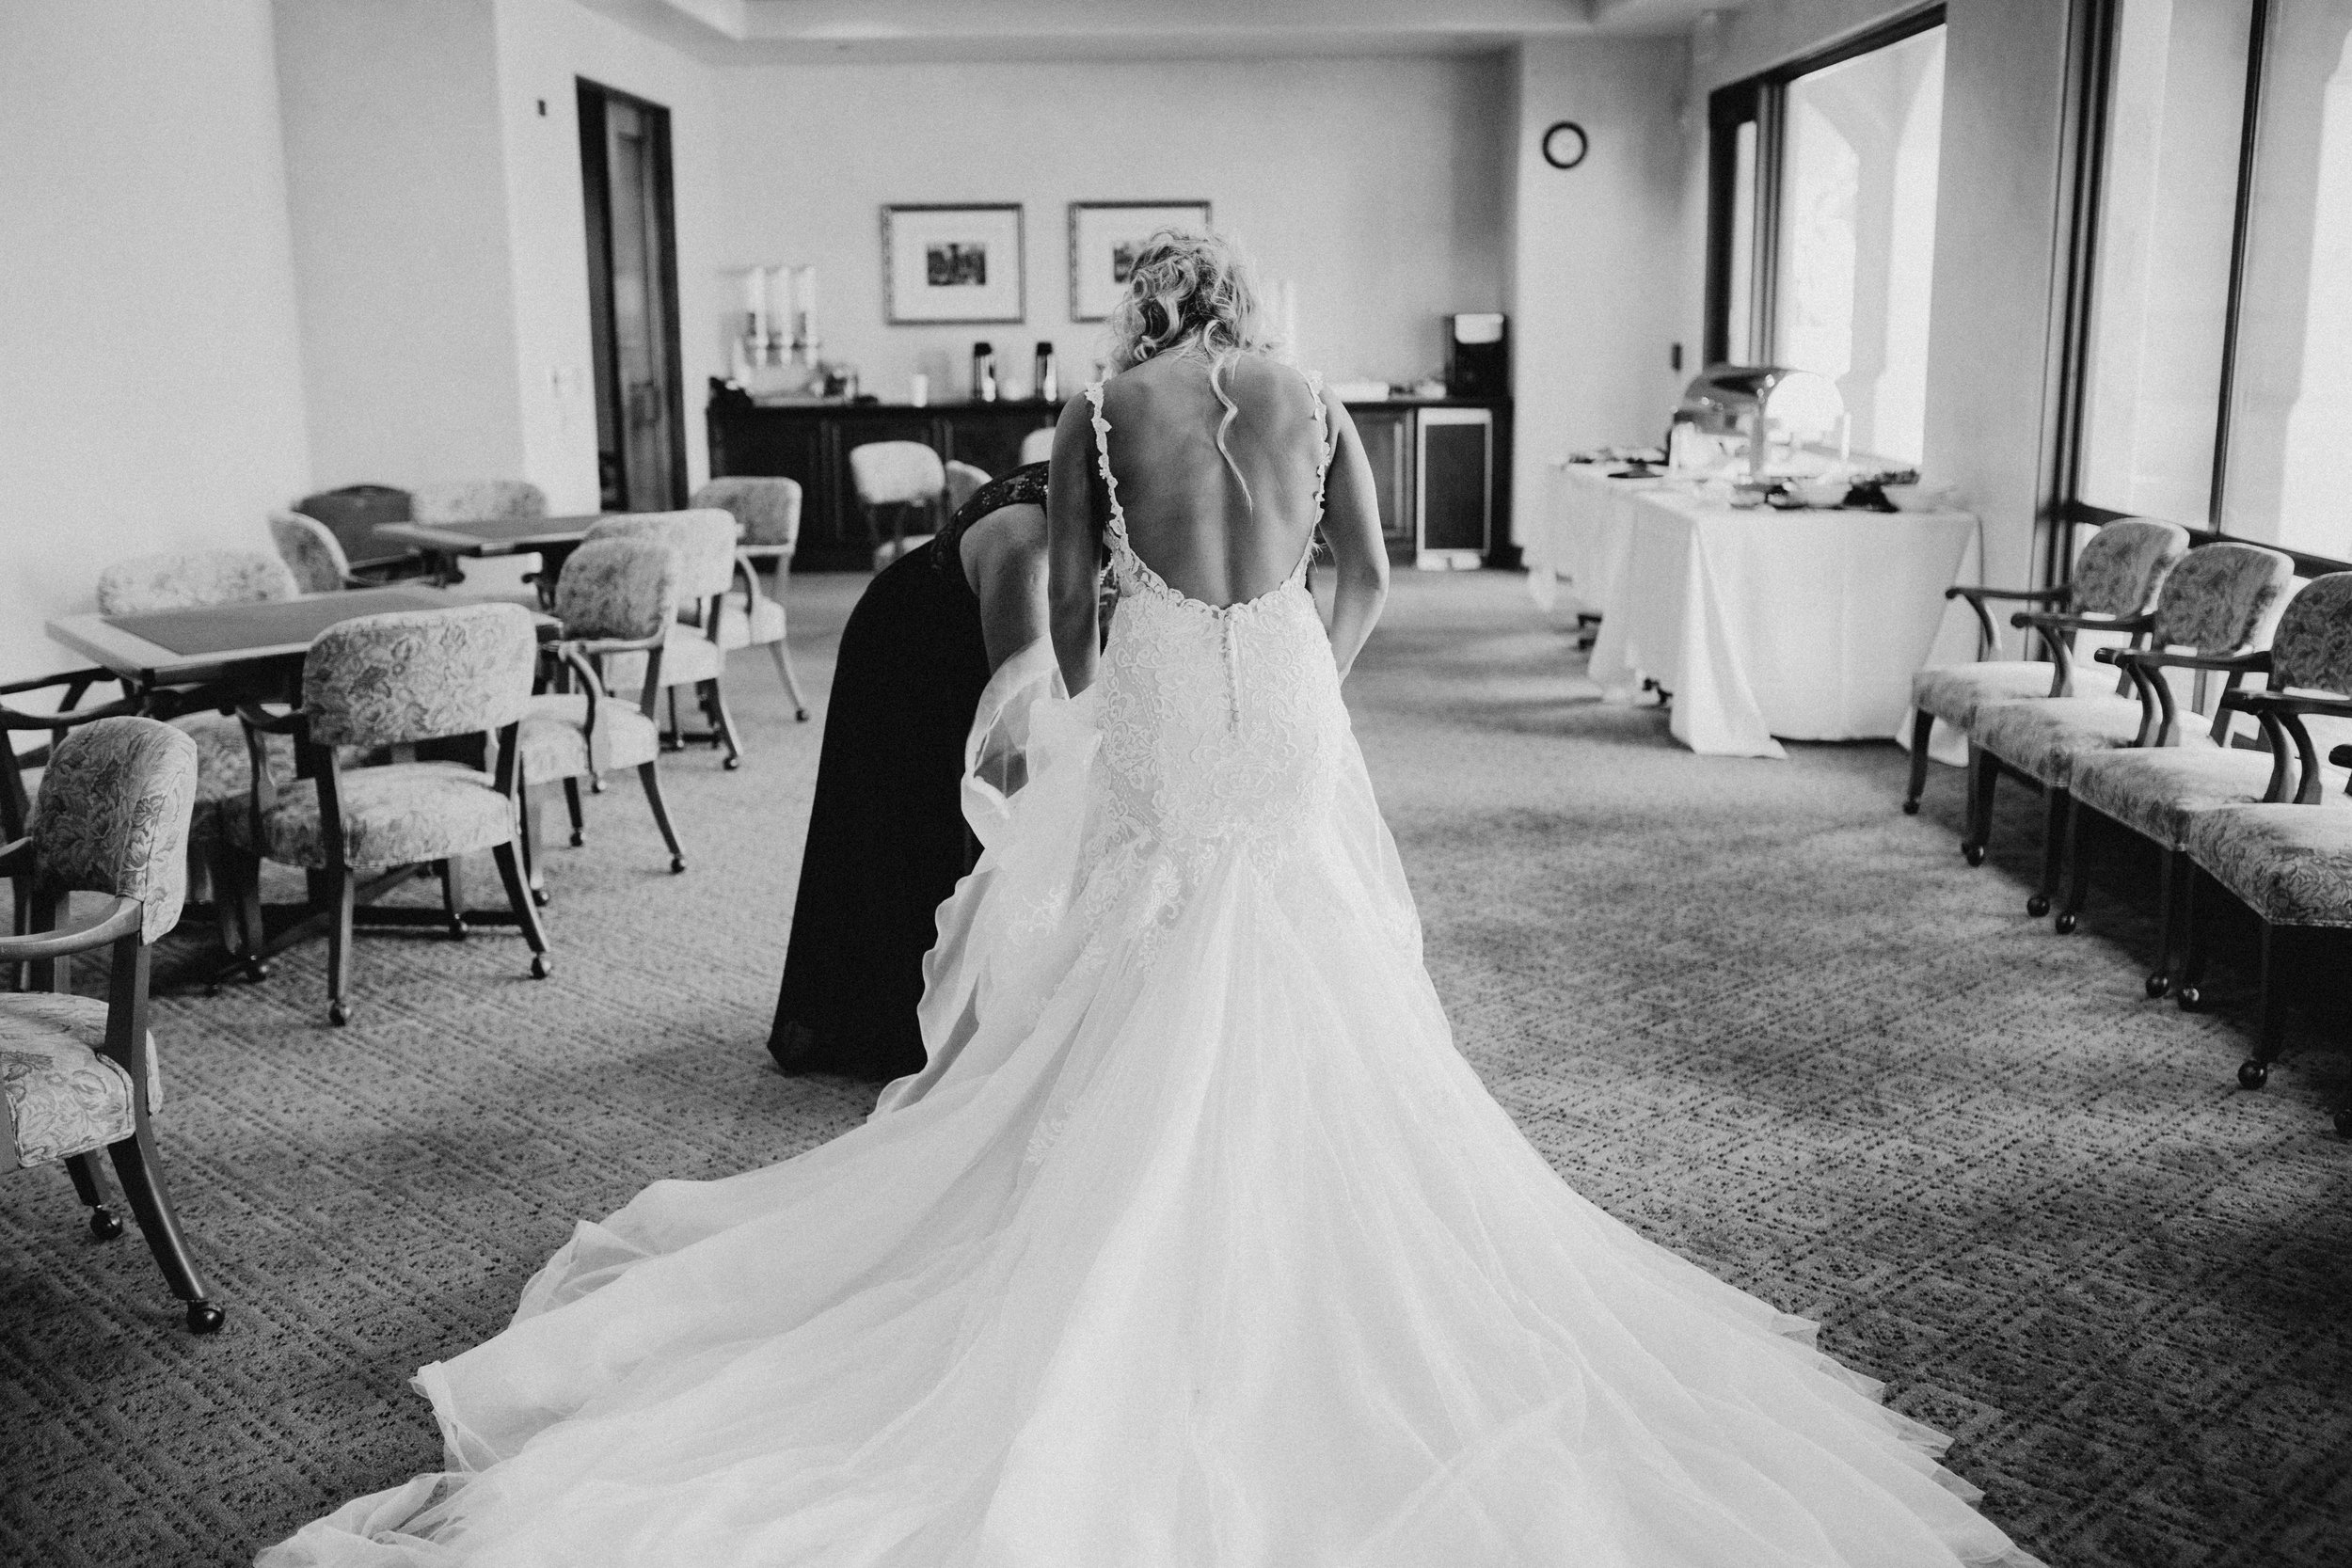 DianaLakePhoto-A+C-Wedding-GettingReady_63.jpg